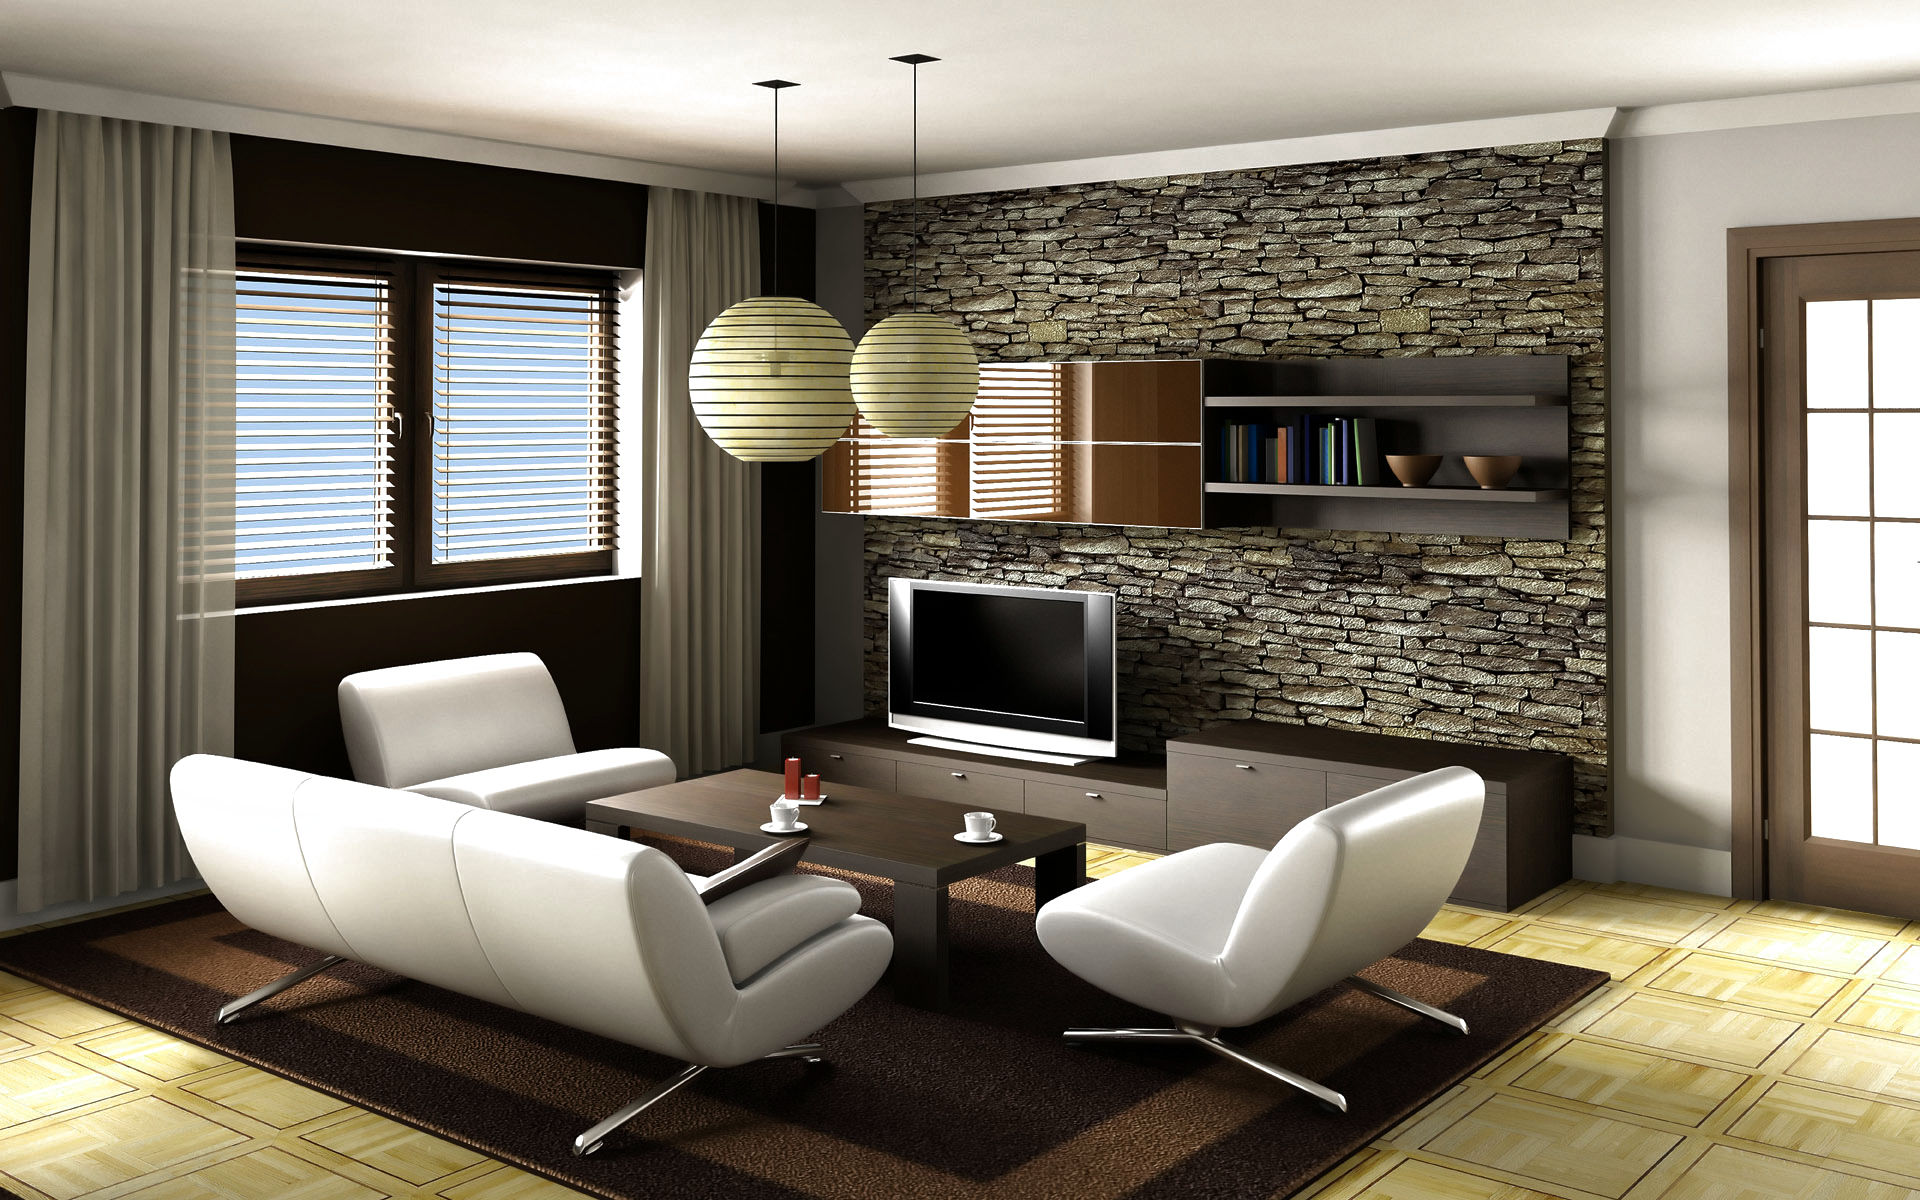 16 modern living room furniture ideas design hgnv com for Modern furniture ideas